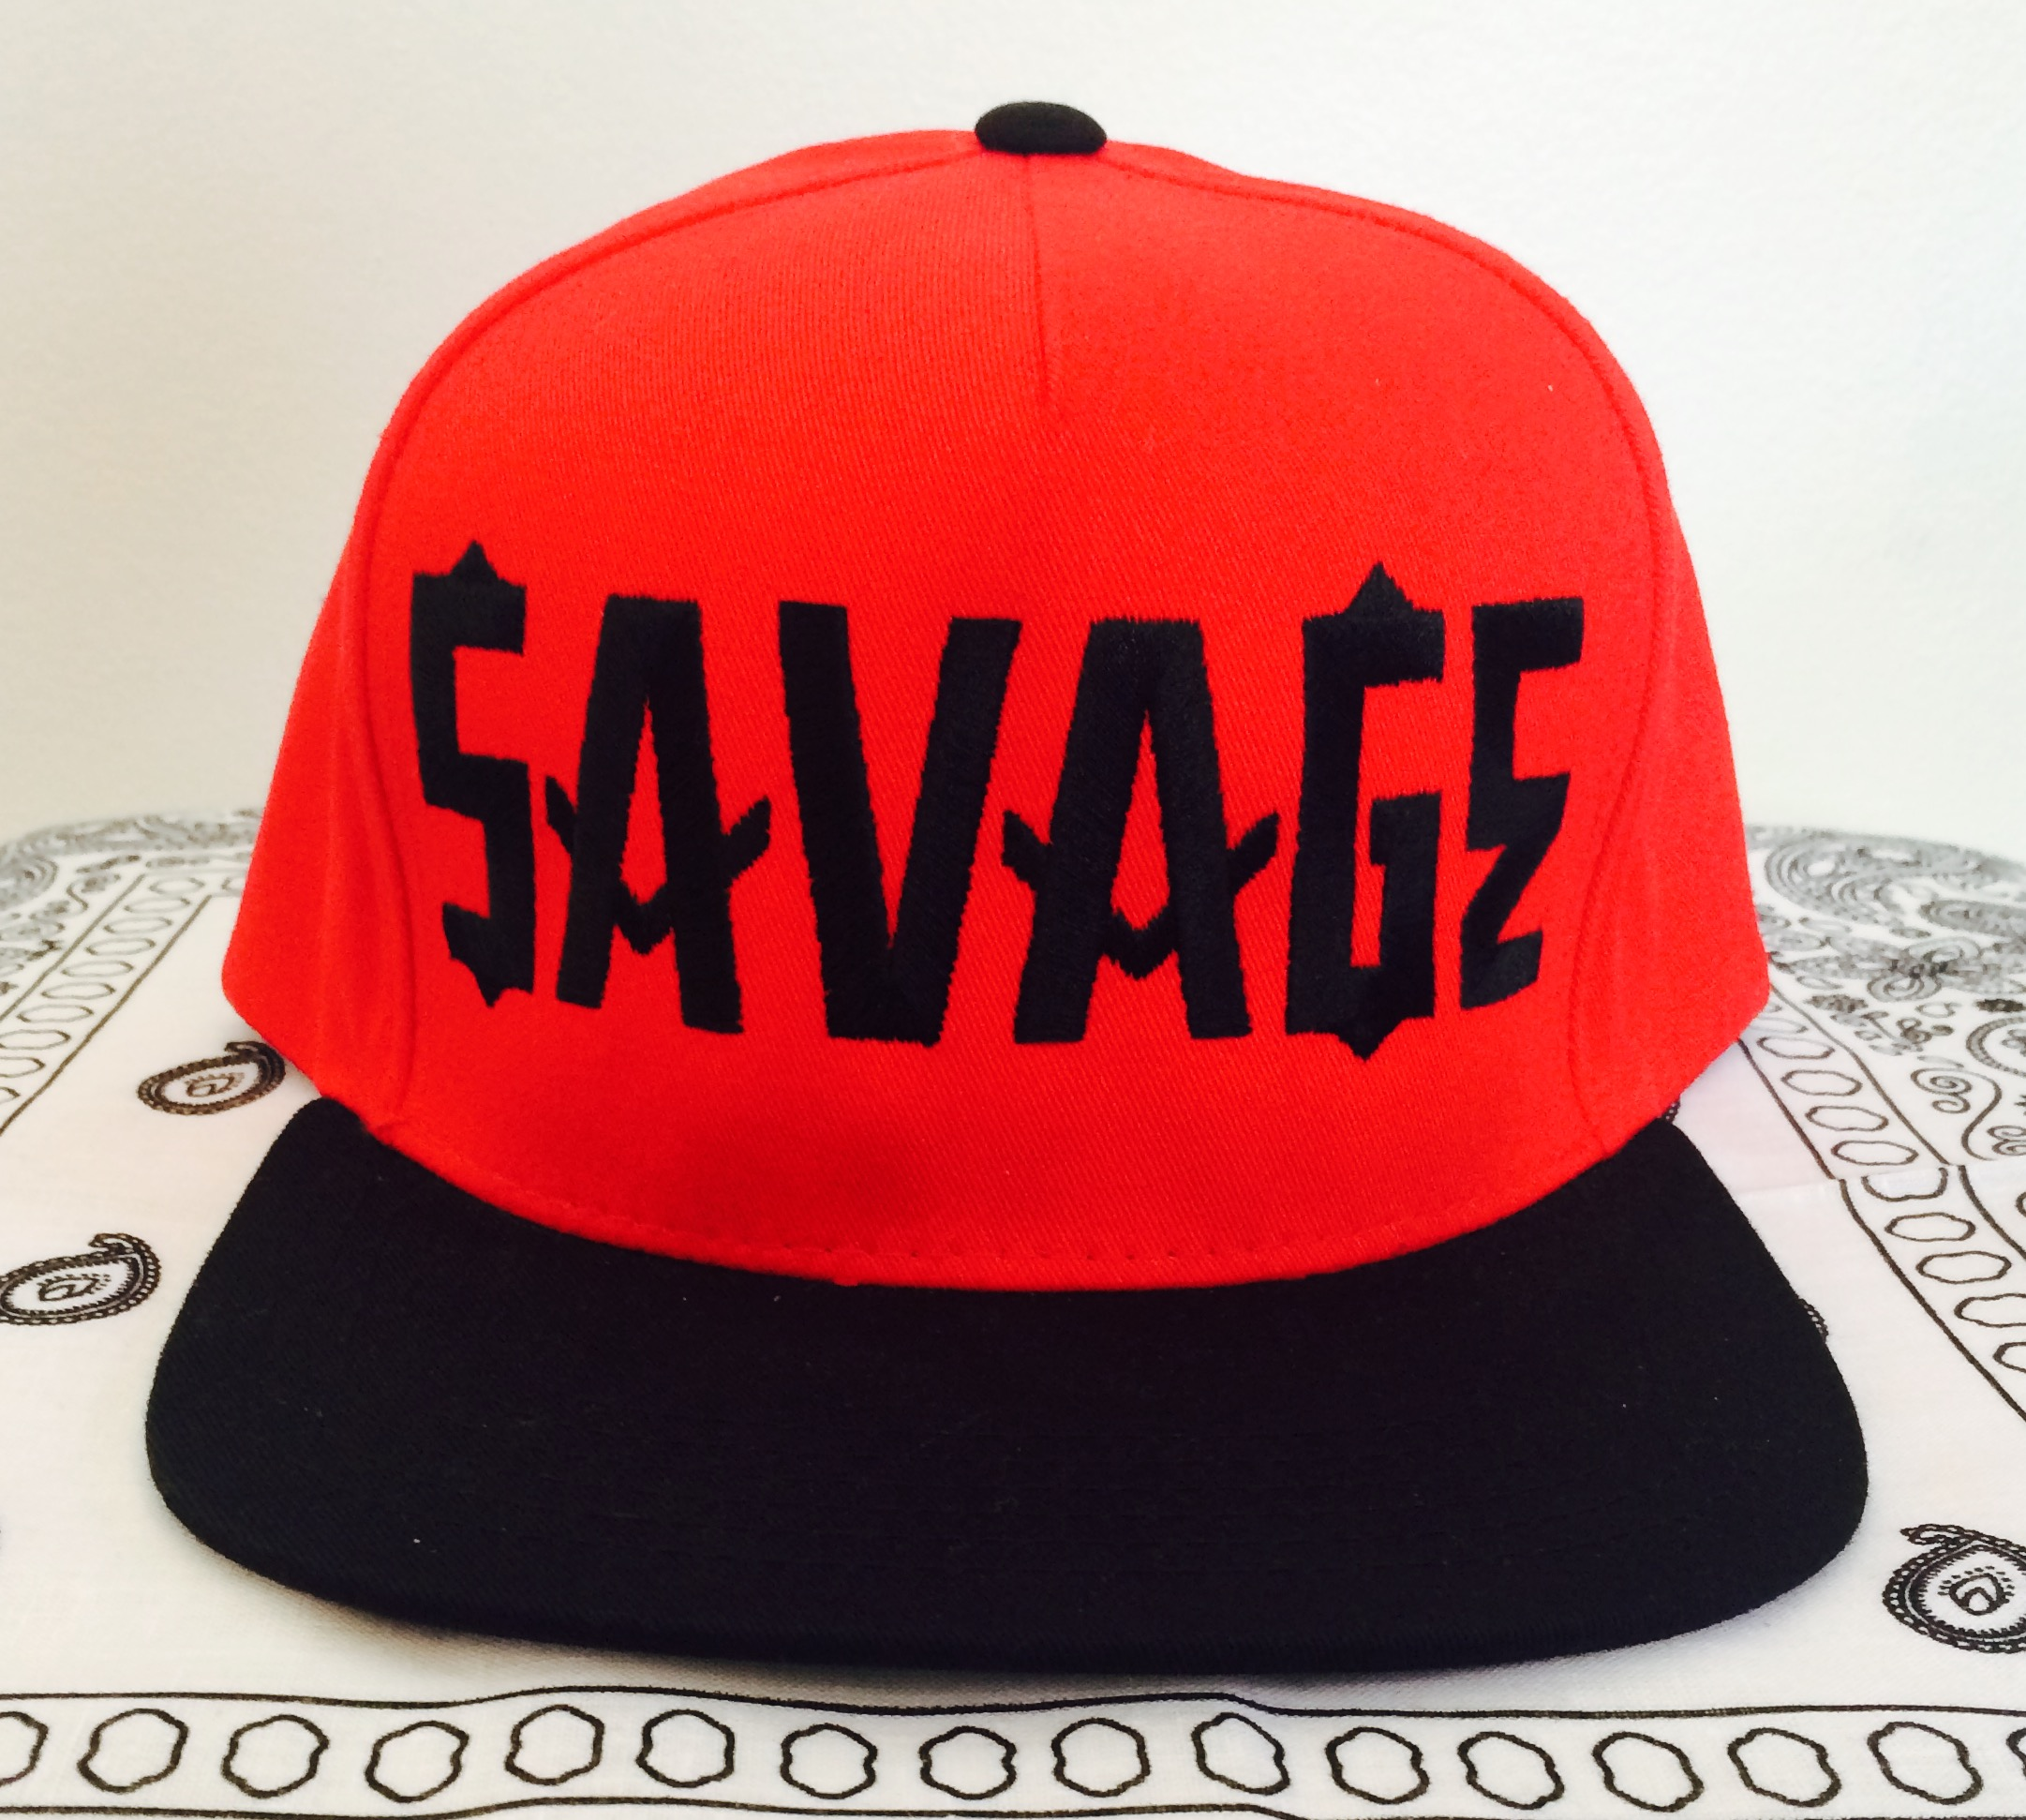 25f0a22ff60 SAVAGE Snapback-Black on Red · LURKER APPAREL · Online Store Powered ...